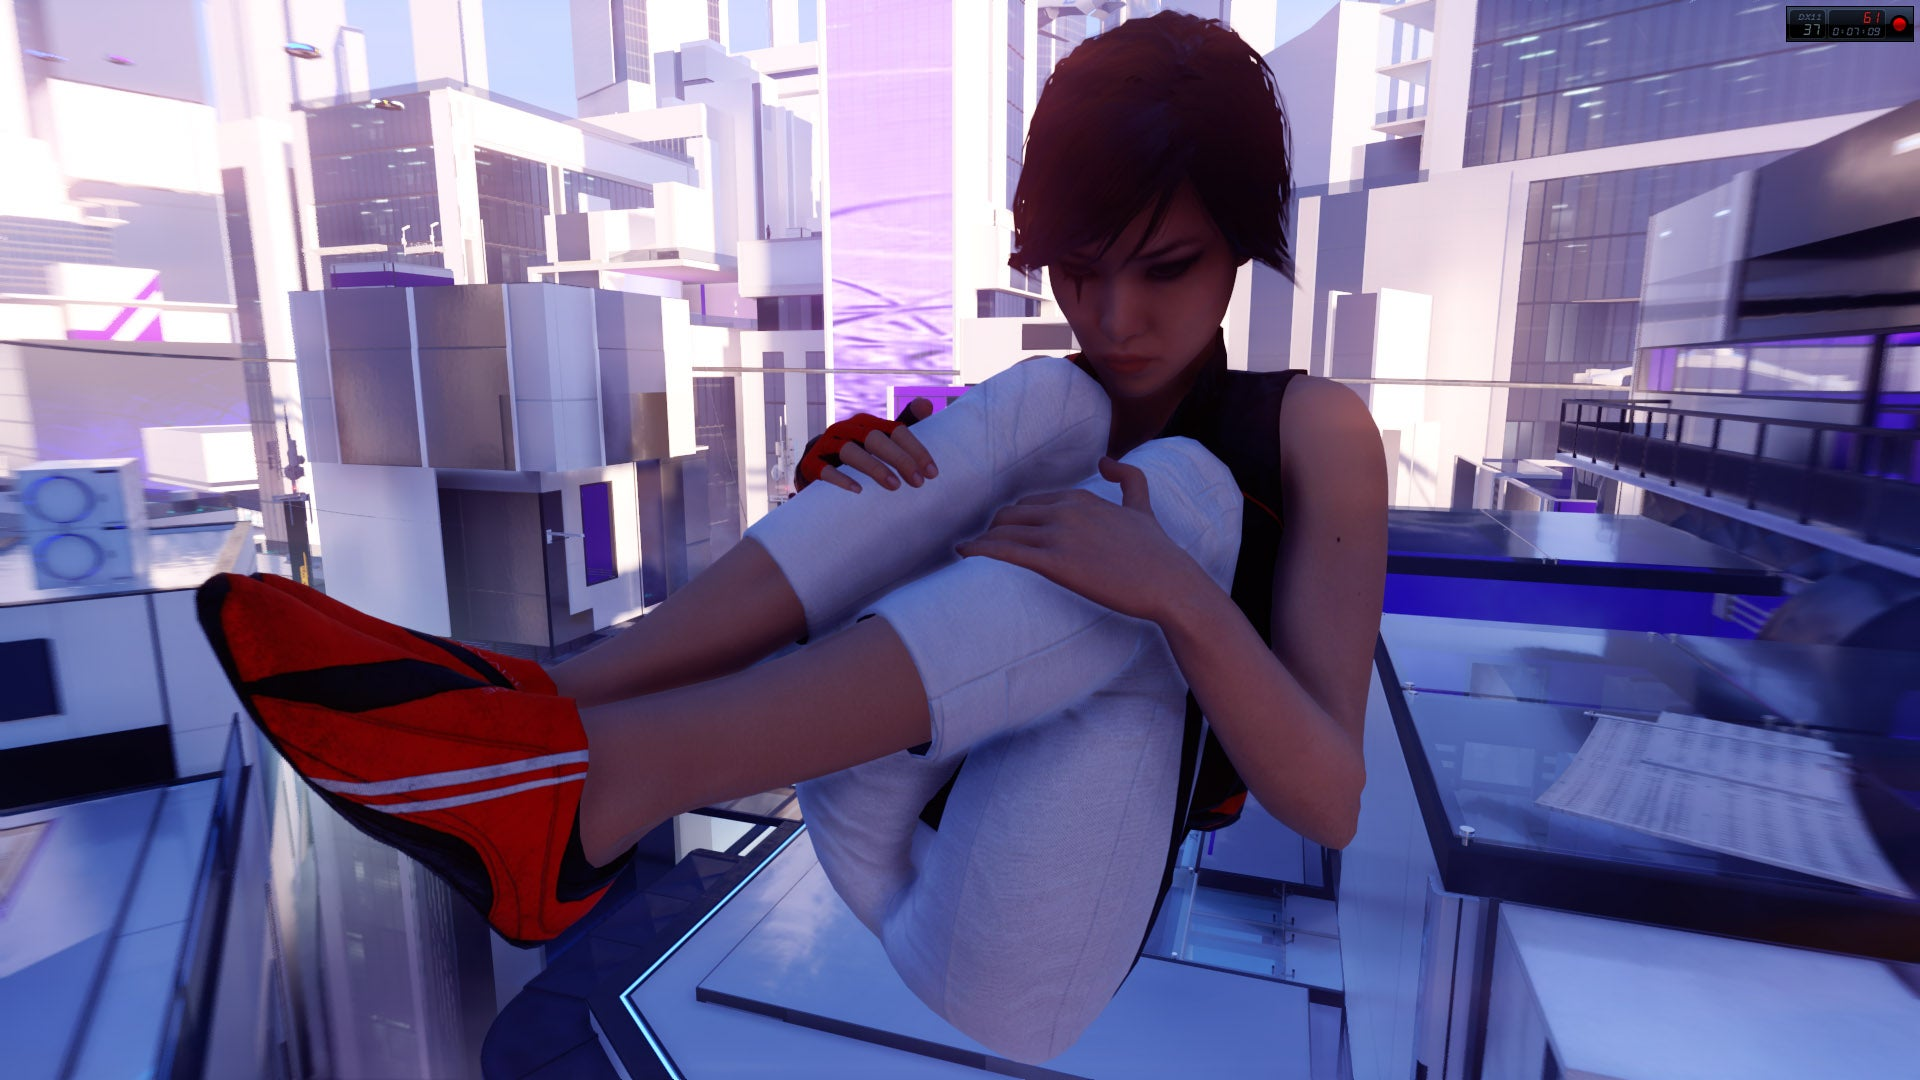 Exploring Mirror's Edge Catalyst From A Different Angle With NVIDIA's Ansel